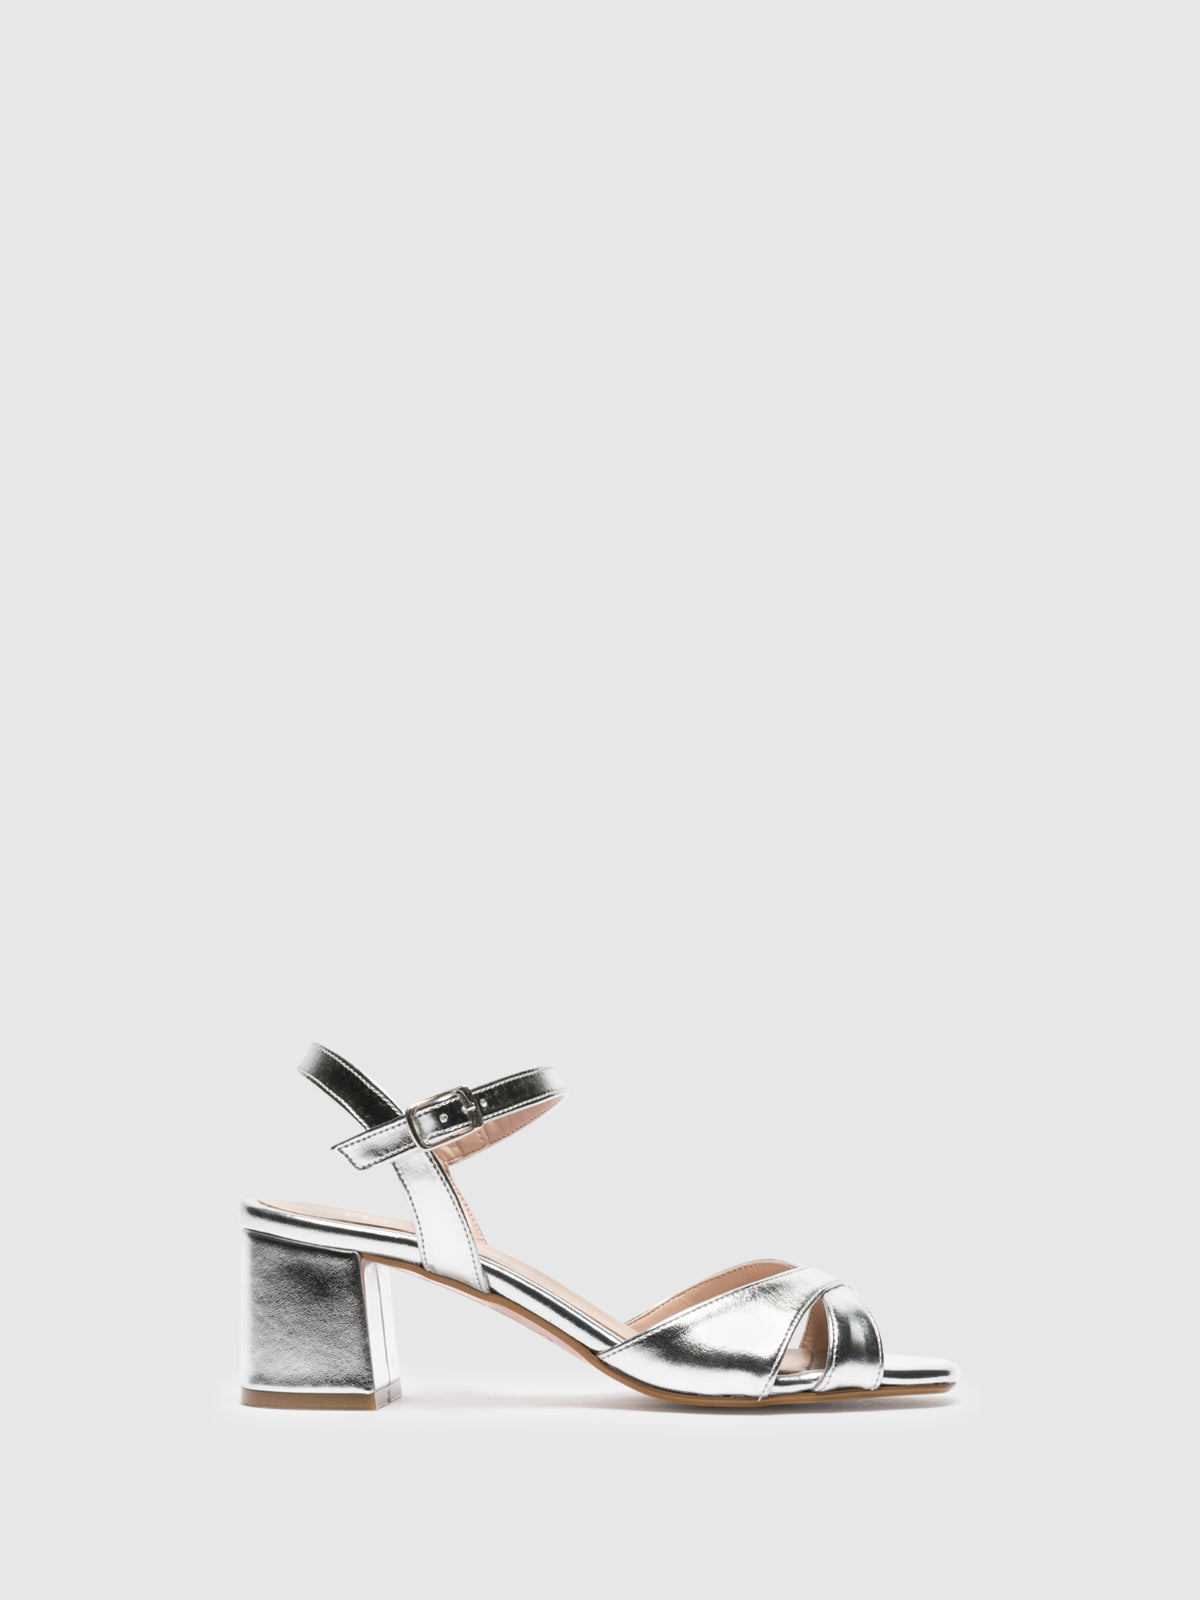 Foreva Silver Ankle Strap Sandals